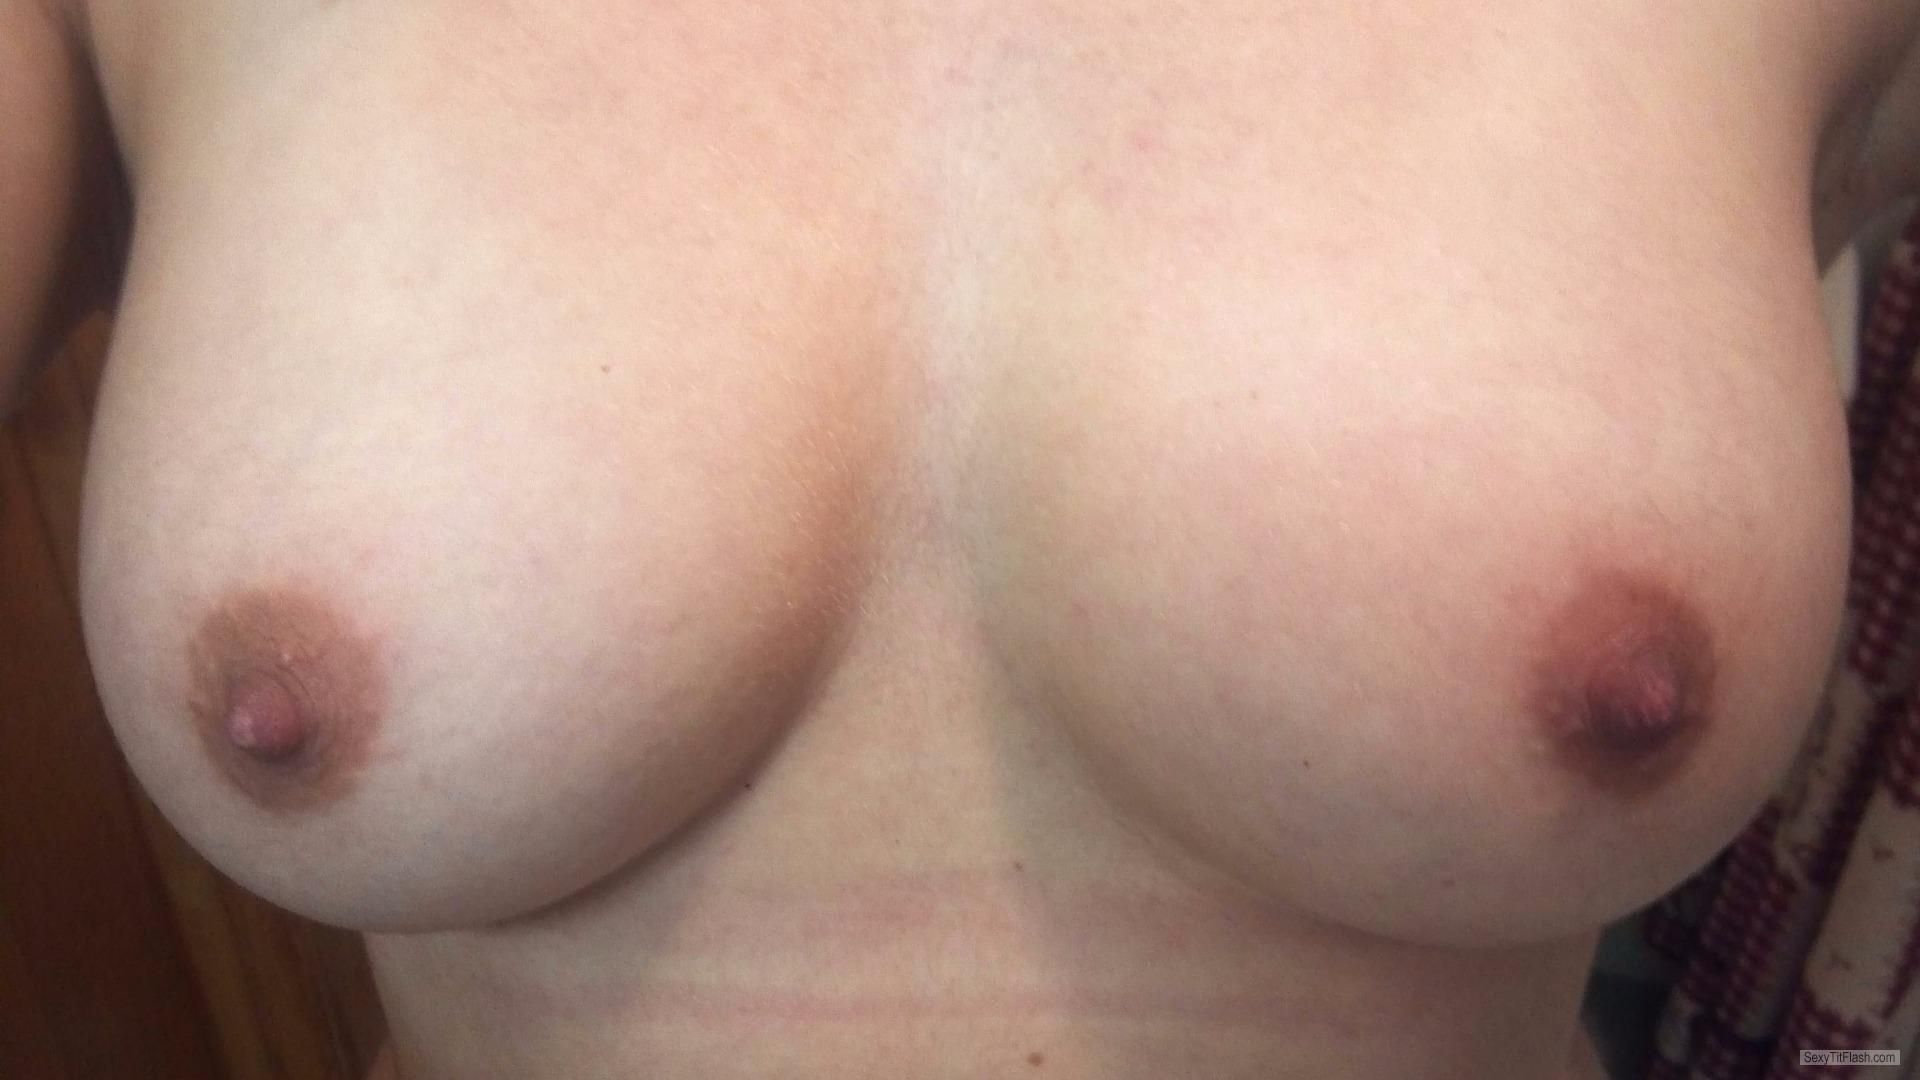 Medium Tits Of My Ex-Girlfriend Selfie by Shep2015